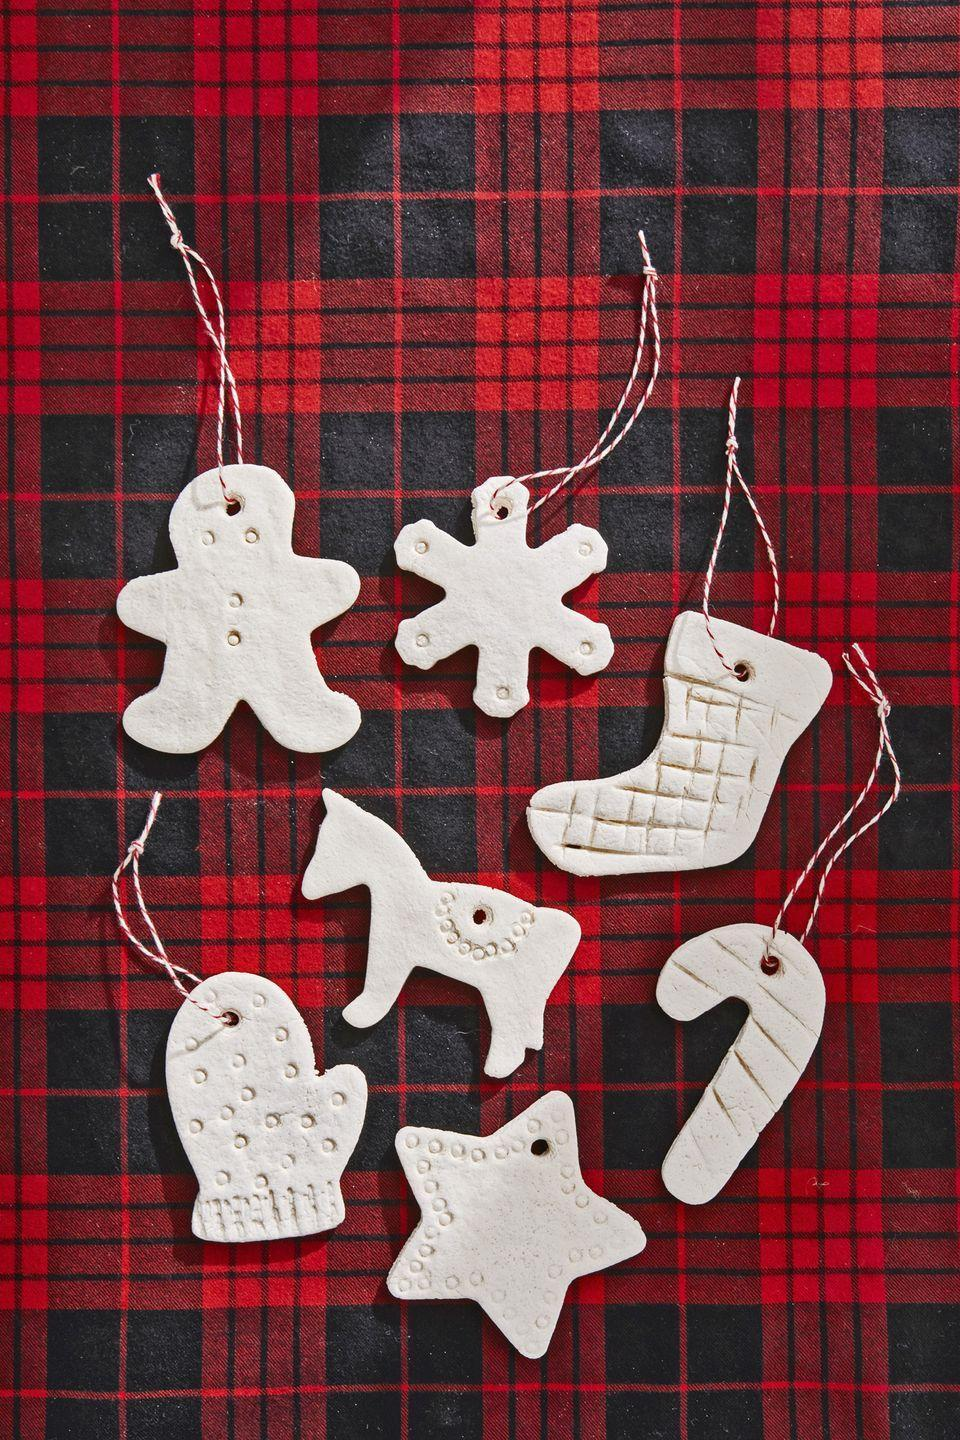 """<p><a href=""""https://www.countryliving.com/diy-crafts/g4965/salt-dough-ornament-ideas/"""" rel=""""nofollow noopener"""" target=""""_blank"""" data-ylk=""""slk:Salt dough ornaments"""" class=""""link rapid-noclick-resp"""">Salt dough ornaments</a> are a classic craft that your kids will love to make. For the perfect ones: Combine 4 cups all-purpose flour, 1 cup salt, and 1 1/2 cups of warm water in a mixing bowl. Knead until the dough is firm and smooth. Roll out dough and cut desired shapes (use a straw to poke a hole for hanging). Bake at 300°F until dry, approximately 1 hour; cool completely.</p><p><a class=""""link rapid-noclick-resp"""" href=""""https://www.amazon.com/Resinta-Christmas-Natural-Wrapping-Totally/dp/B077M9HVWK?tag=syn-yahoo-20&ascsubtag=%5Bartid%7C10050.g.1070%5Bsrc%7Cyahoo-us"""" rel=""""nofollow noopener"""" target=""""_blank"""" data-ylk=""""slk:SHOP TWINE"""">SHOP TWINE</a></p>"""